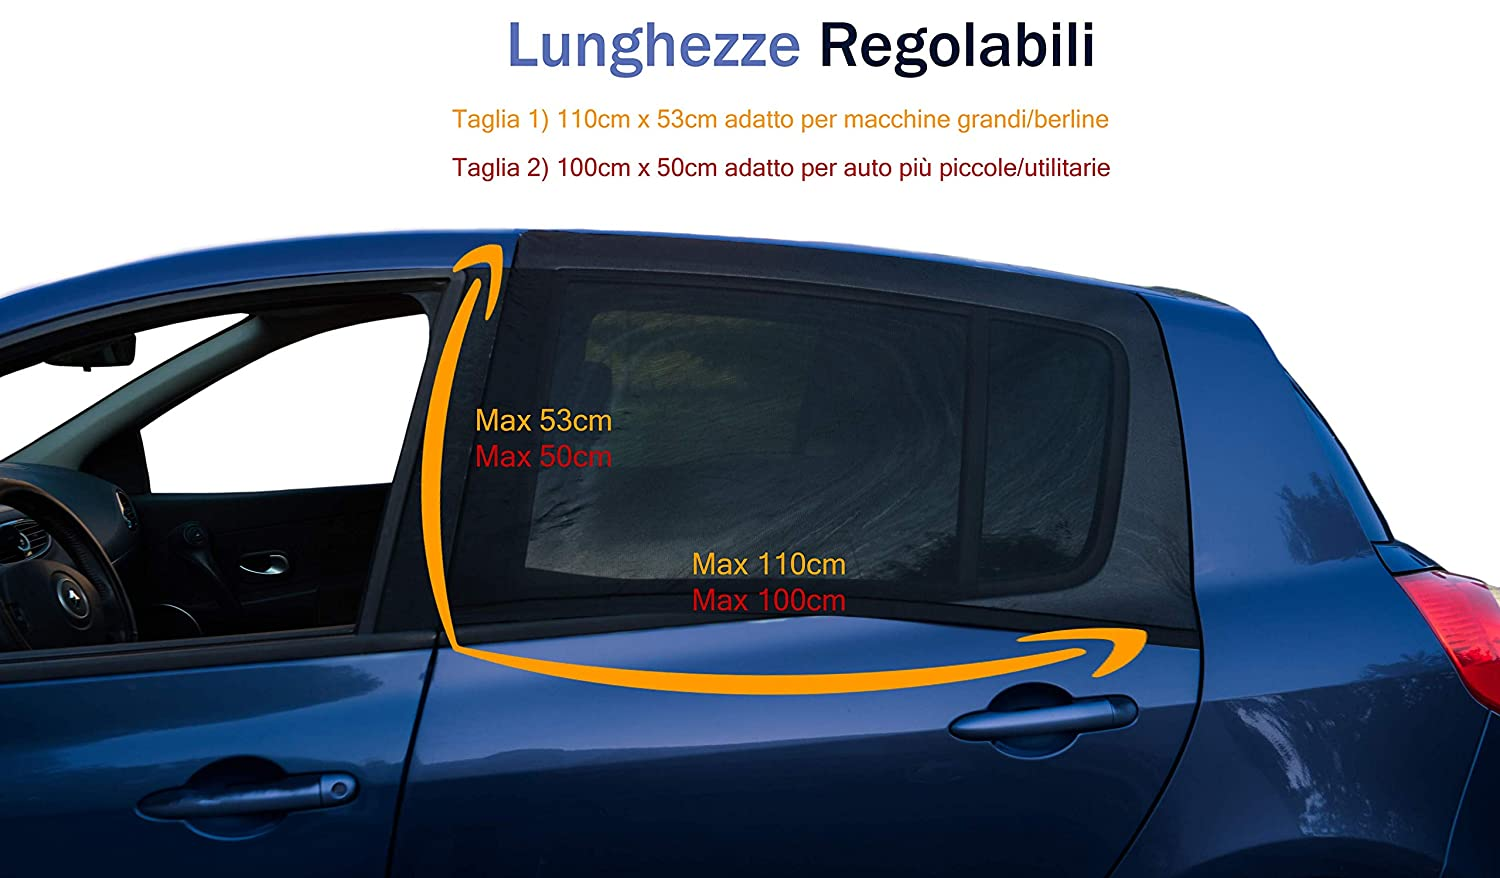 Car Sunshades Side Window for Children and Pets Blocking Over 90/% of UV Rays Anti-Mosquito and Anti-Dust 2 Pieces Black 2 Universal Sizes Premium Quality Easy Installation 110 cm x 53 cm Black